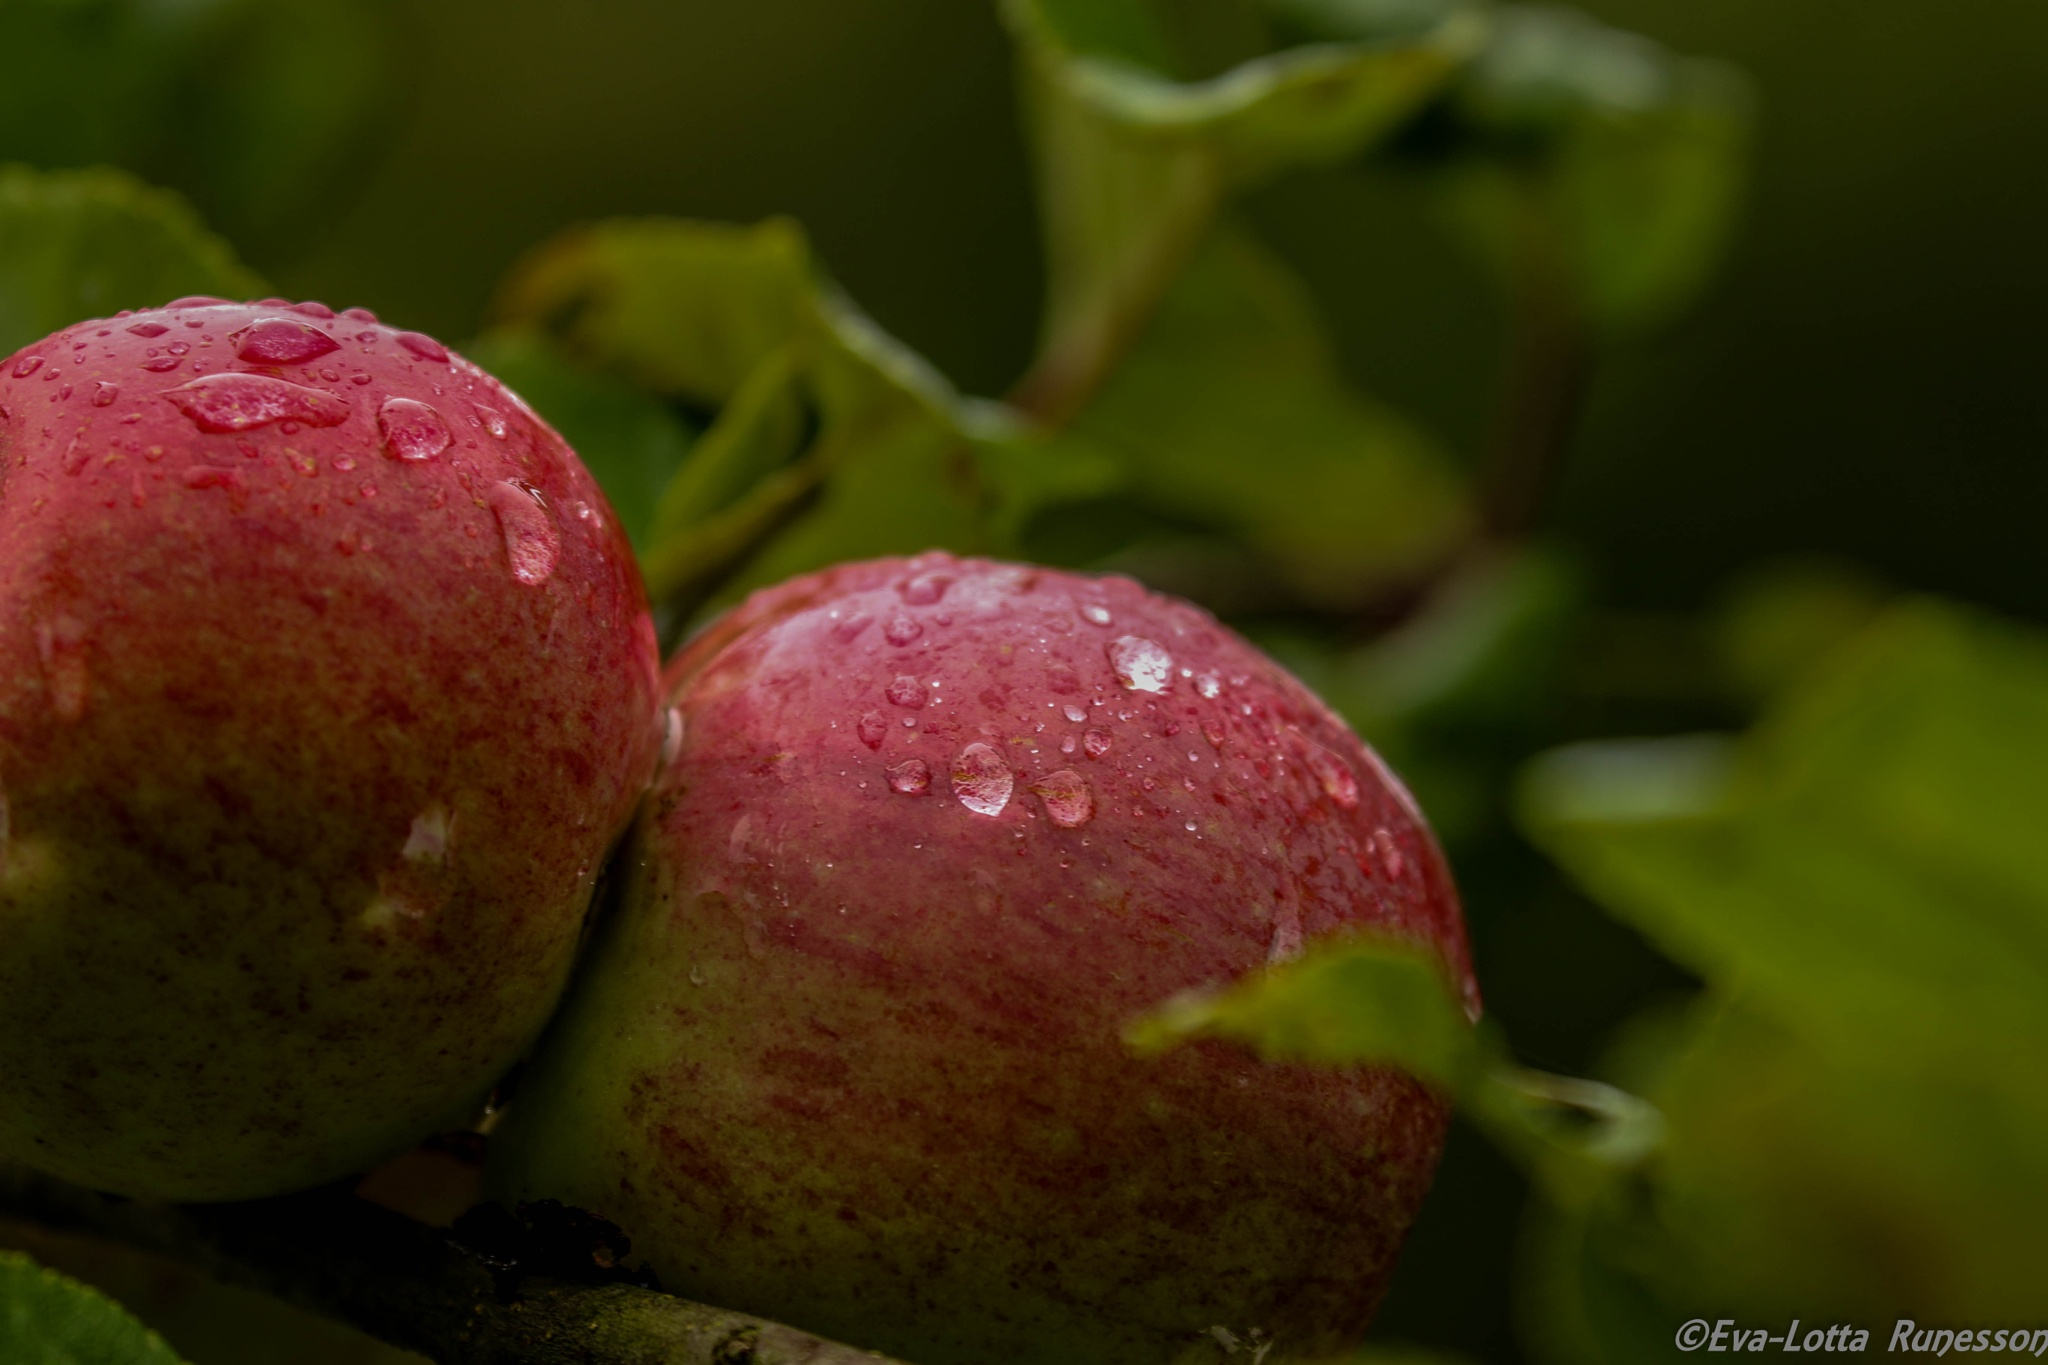 apples from our garden by Runesson